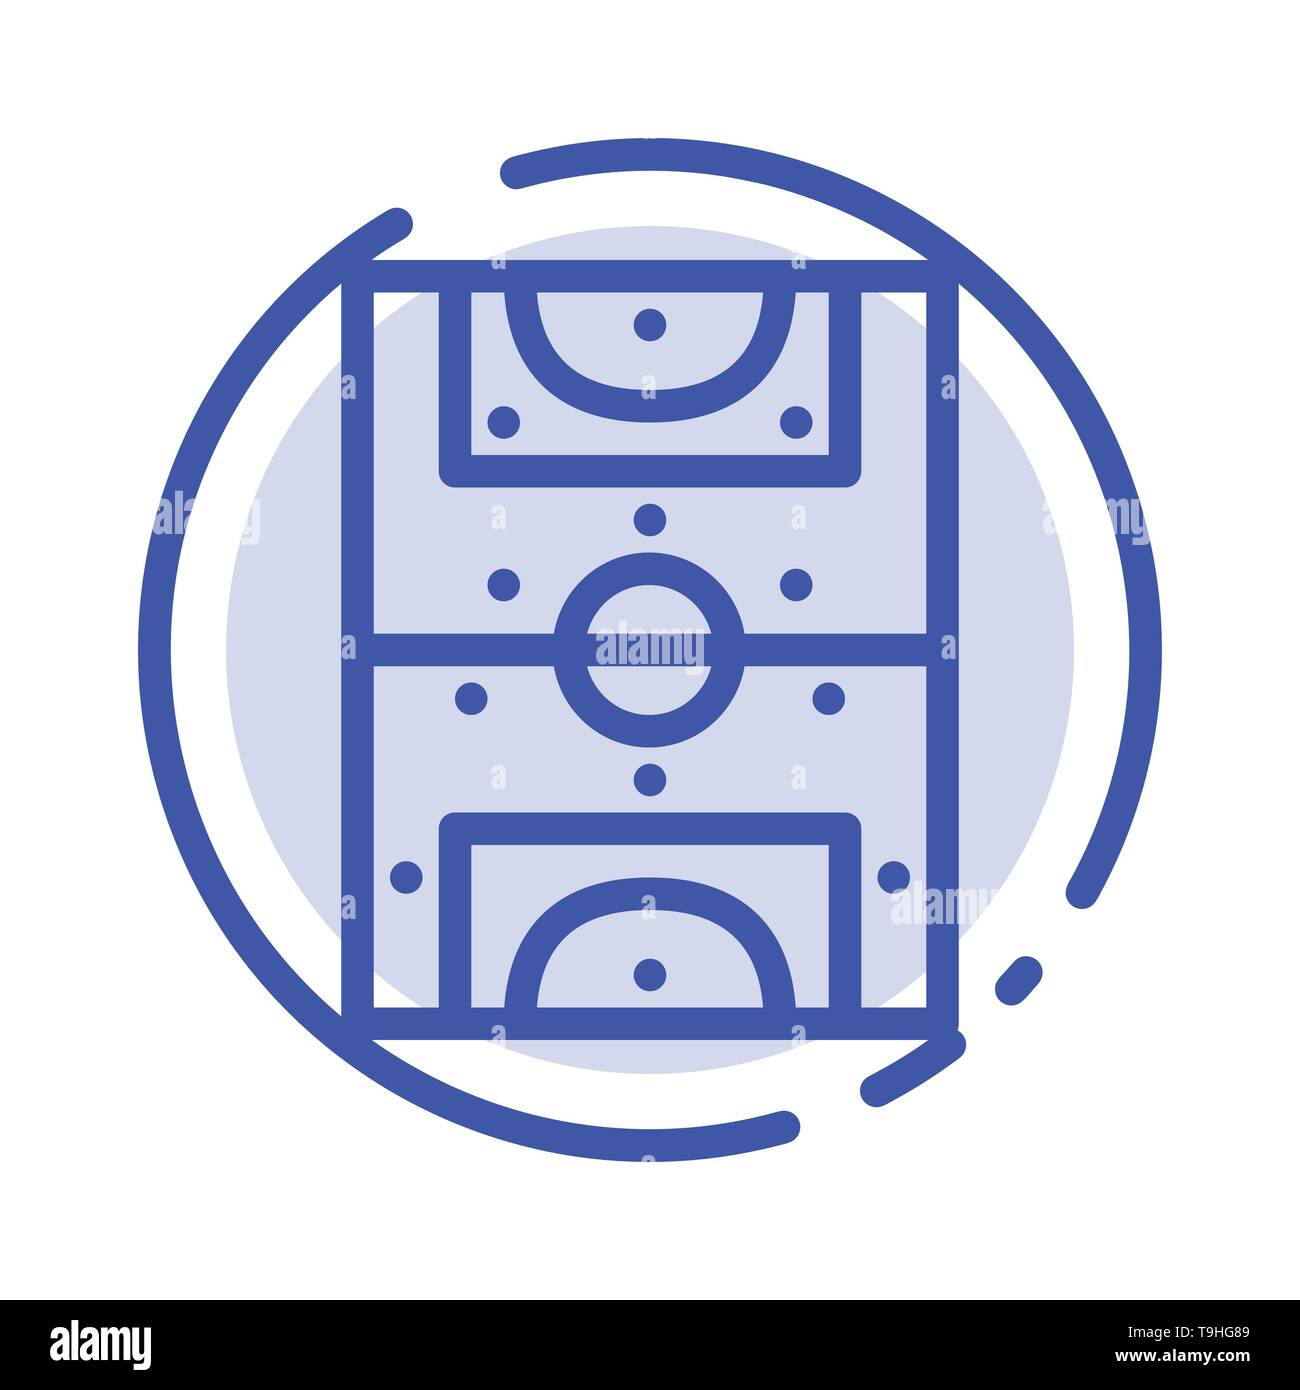 Entertainment, Game, Football, Field Blue Dotted Line Line Icon - Stock Image